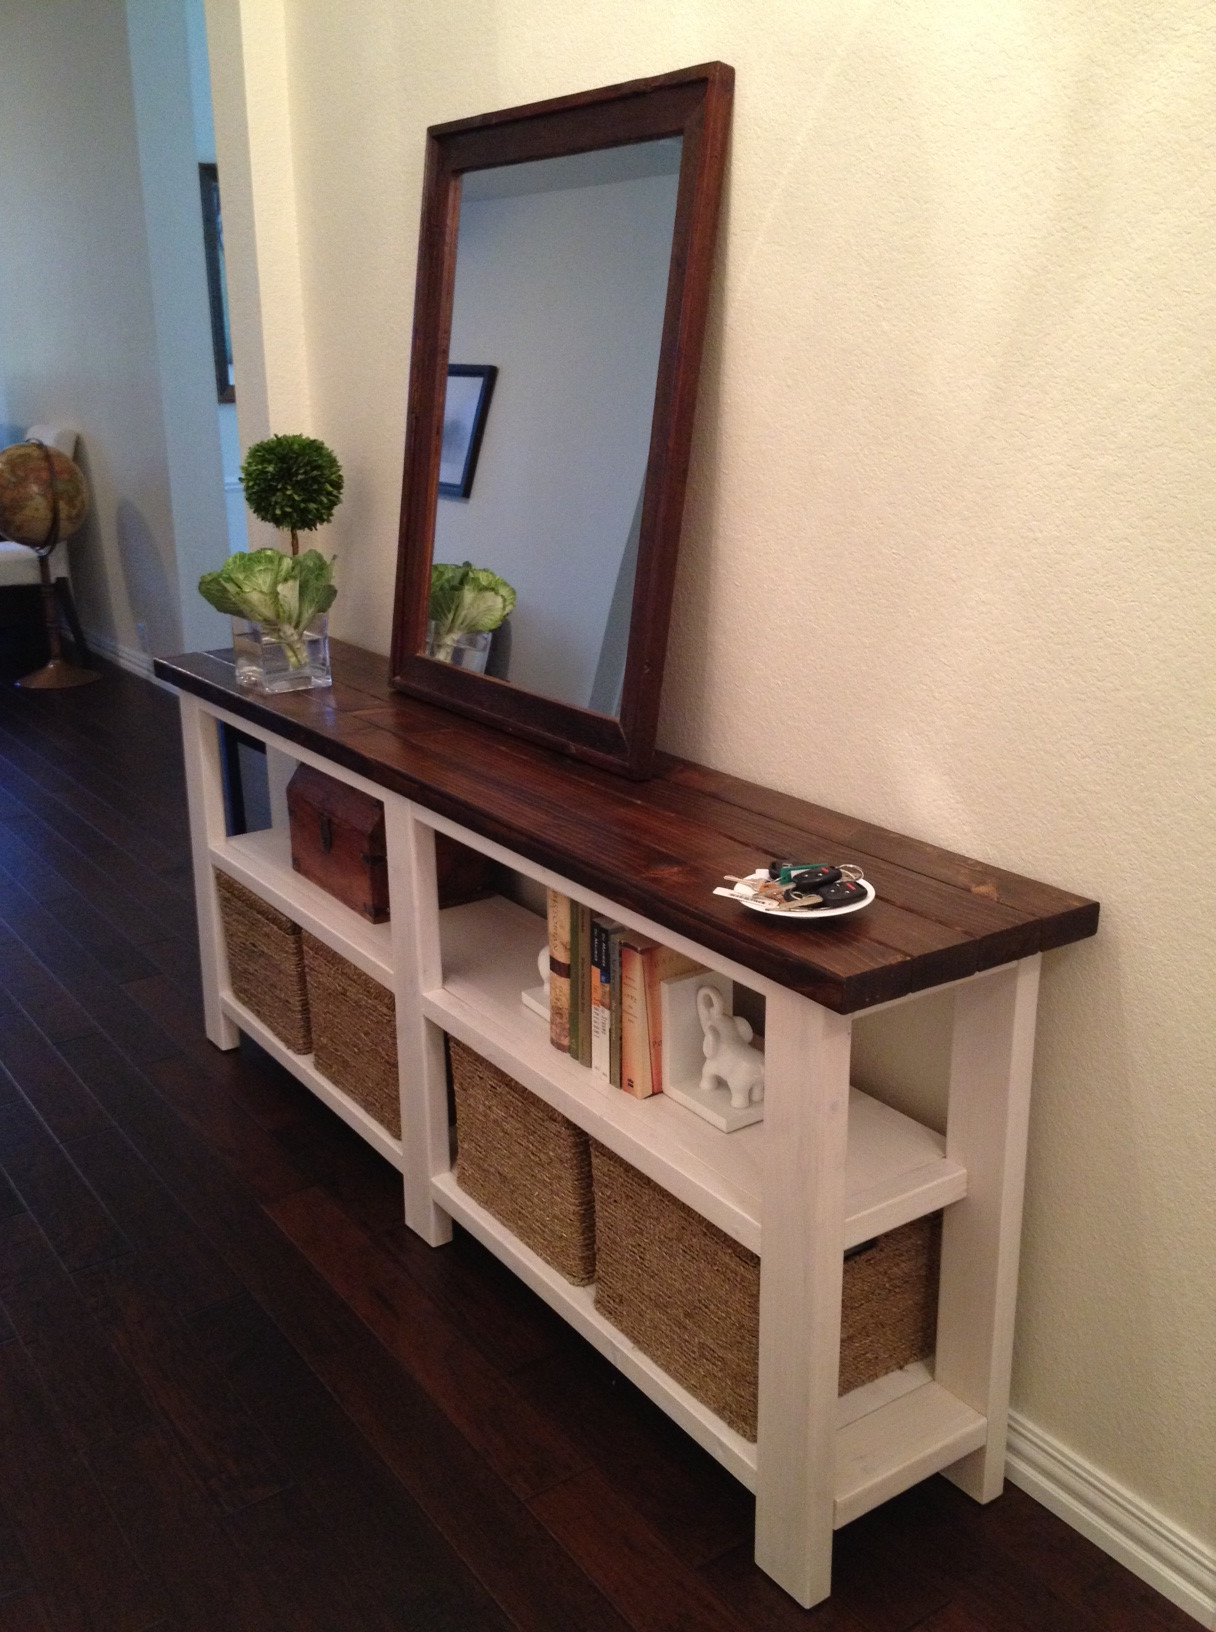 Best ideas about Console Table DIY . Save or Pin Rustic Chic Console Table Now.